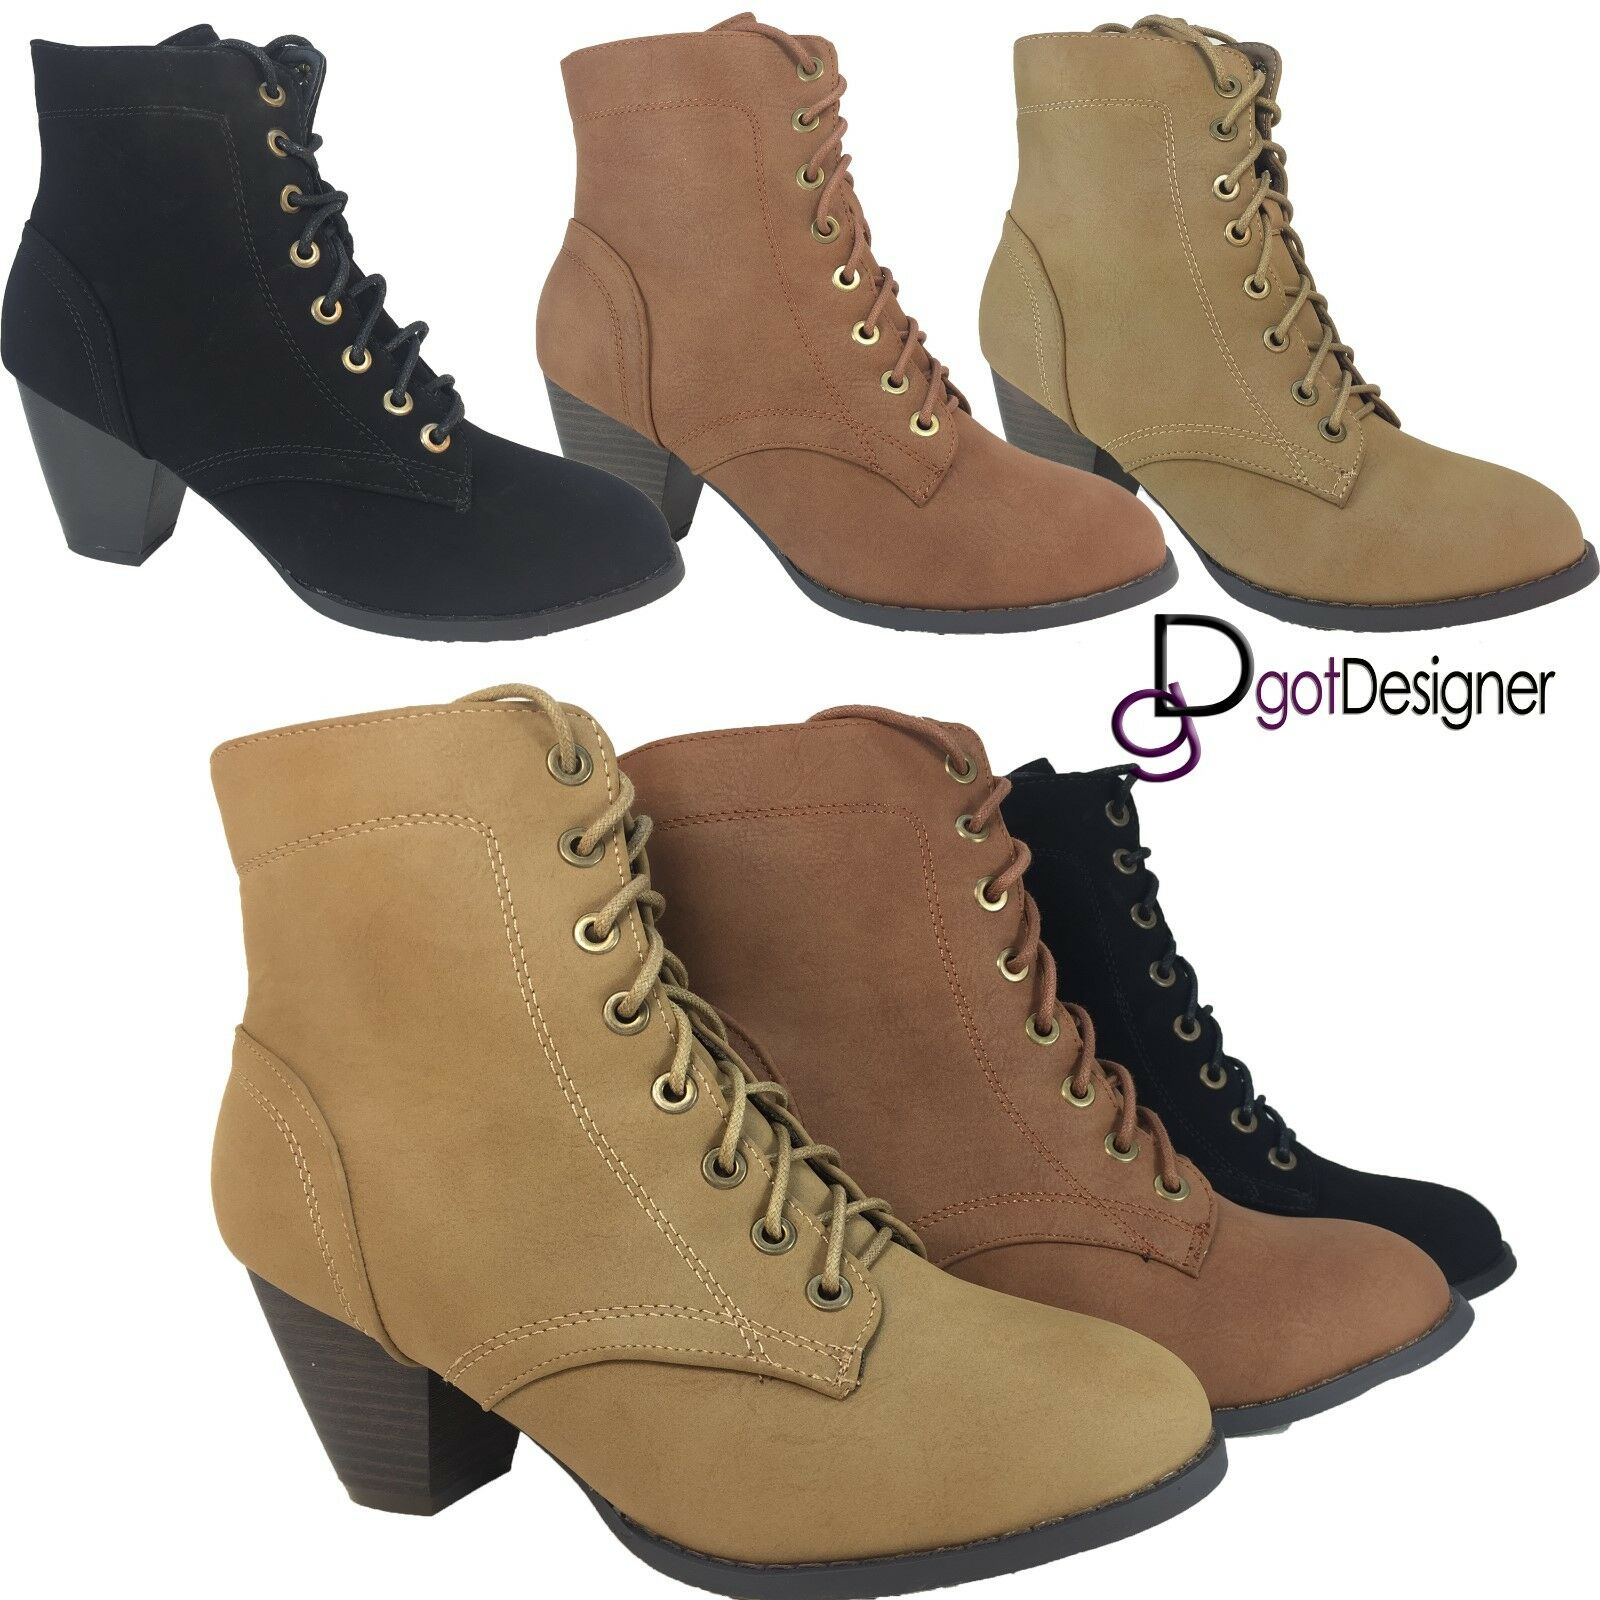 New Womens Fashion Boots Shoes Slouch Mid Calf Flat Comfort Casual Stylish Soda